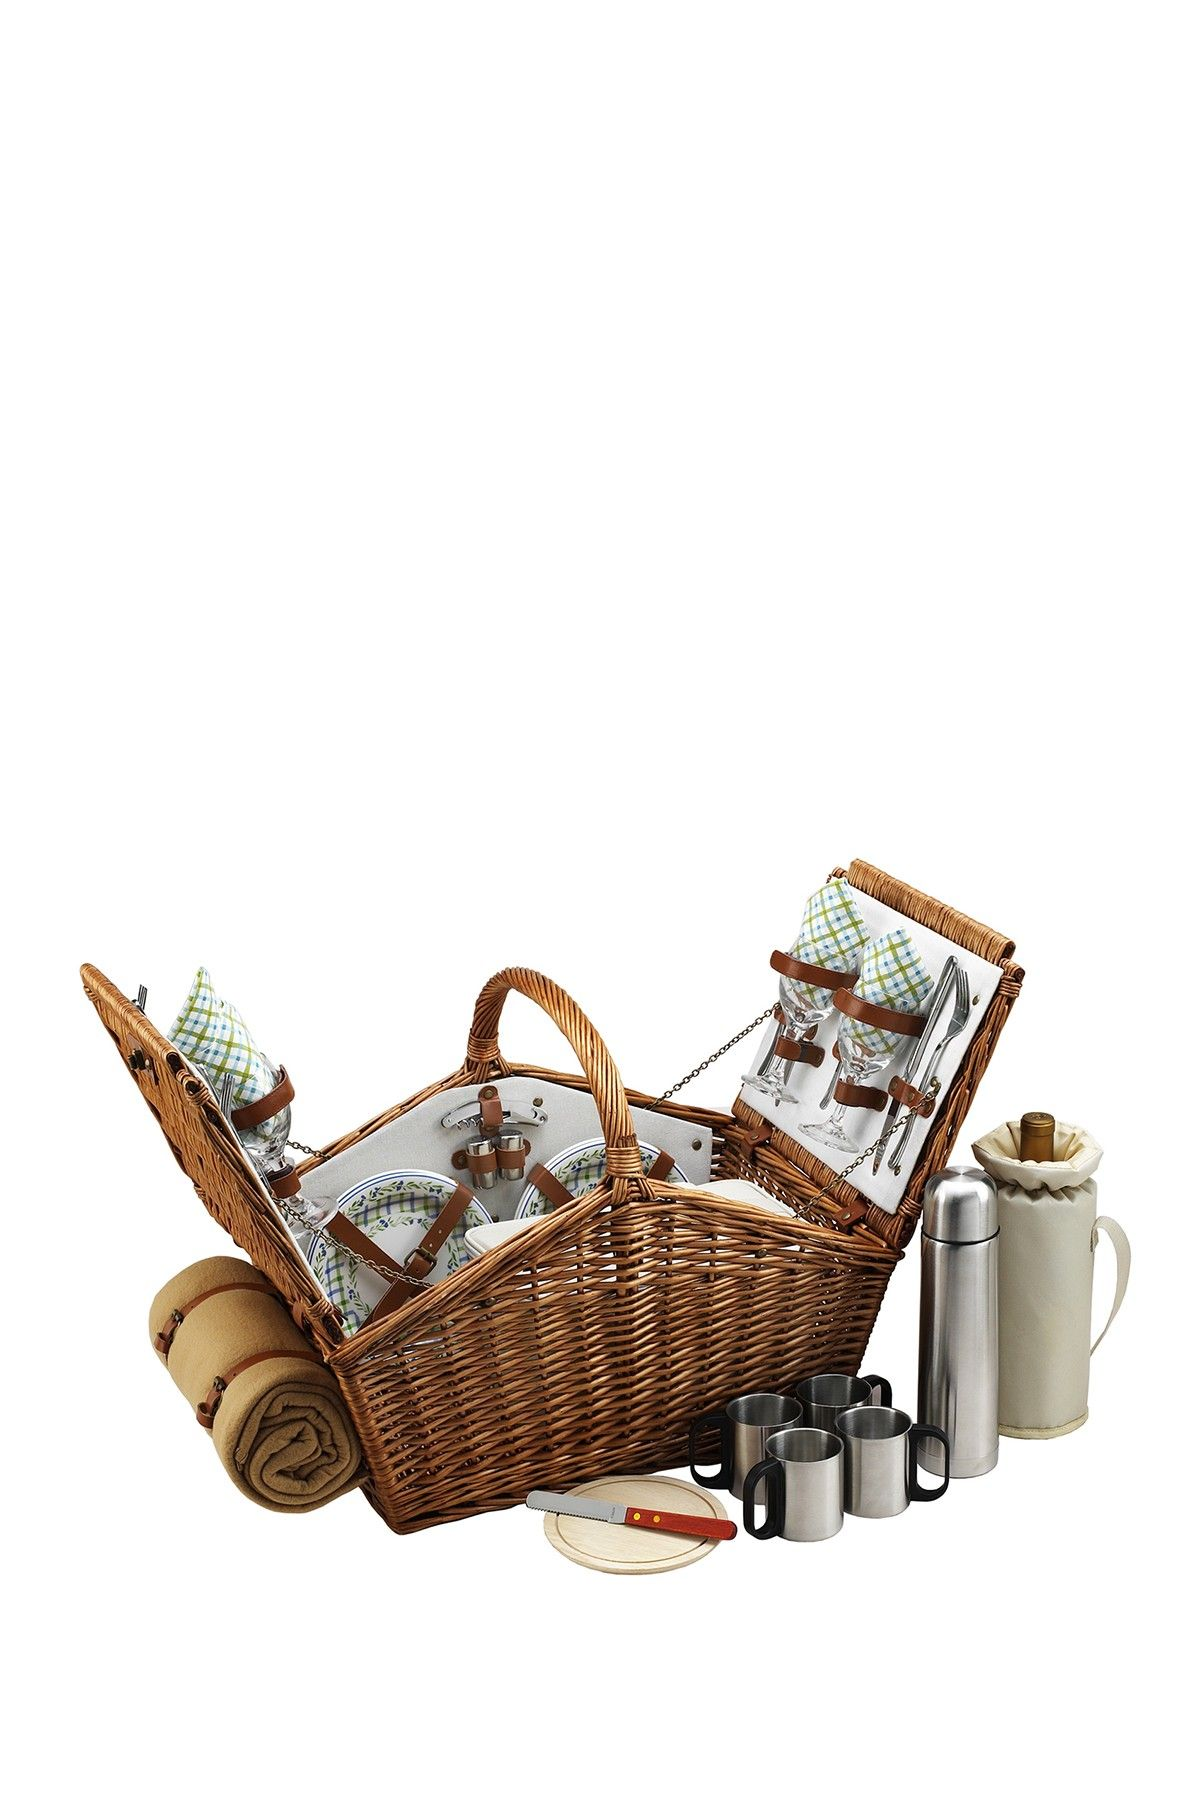 Huntsman Four Person Coffee Service Picnic Basket  Blanket – Awesome!!!